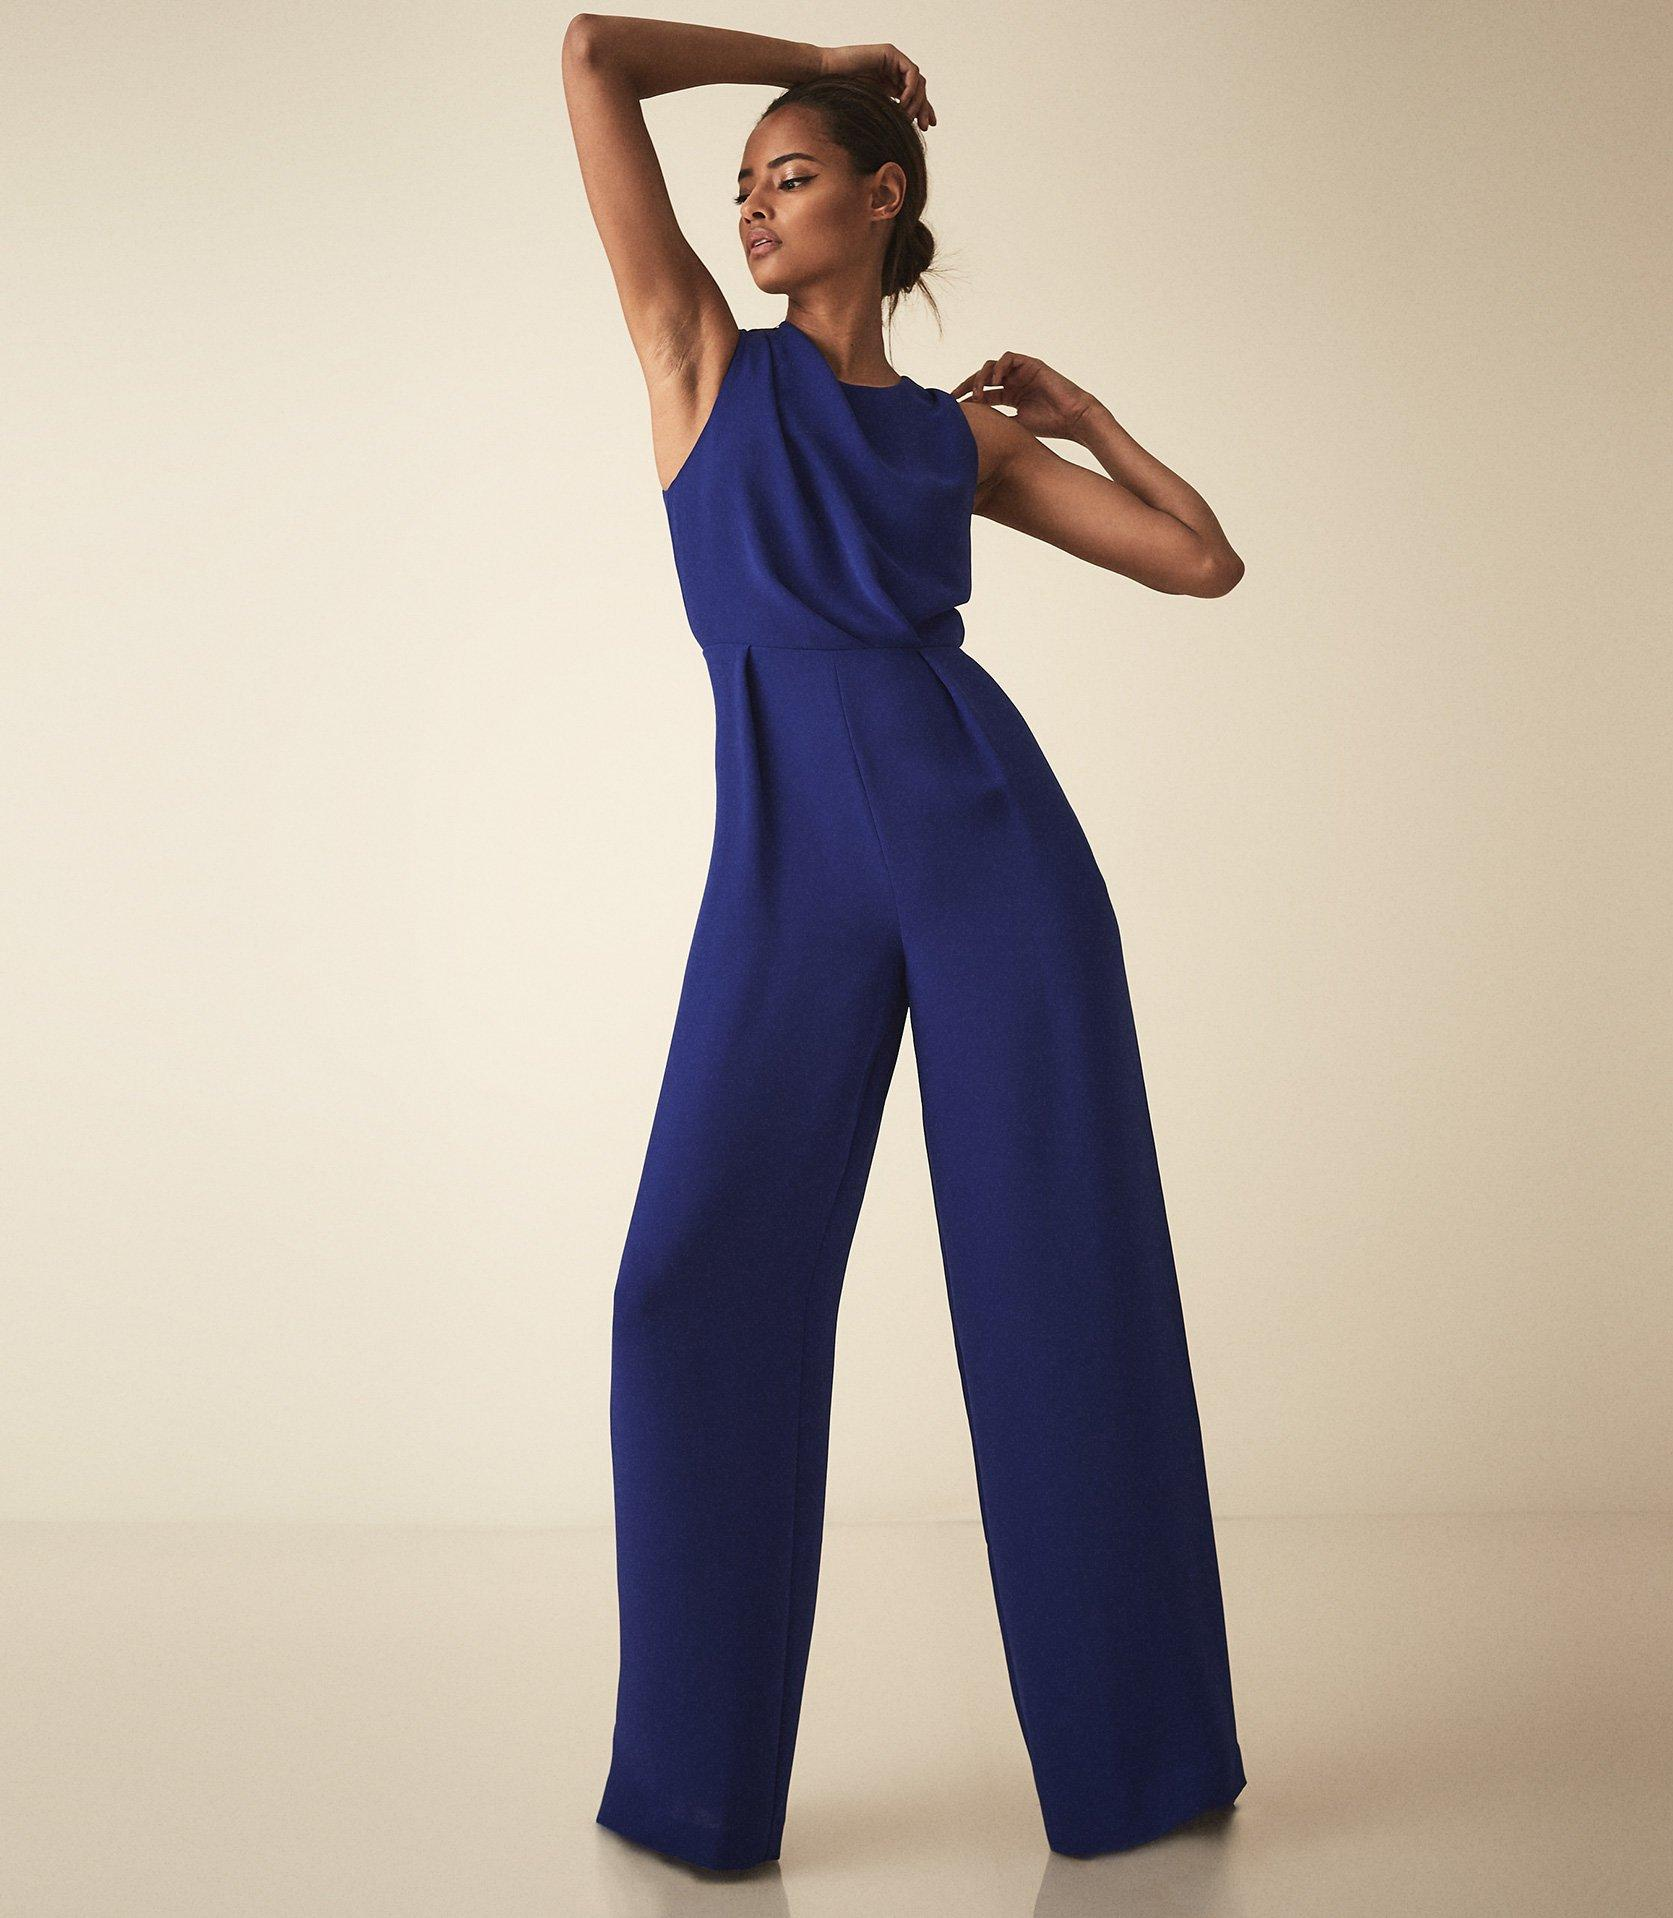 b8fcbcad1 Reiss Chey - Cut Out Detail Jumpsuit in Blue - Lyst